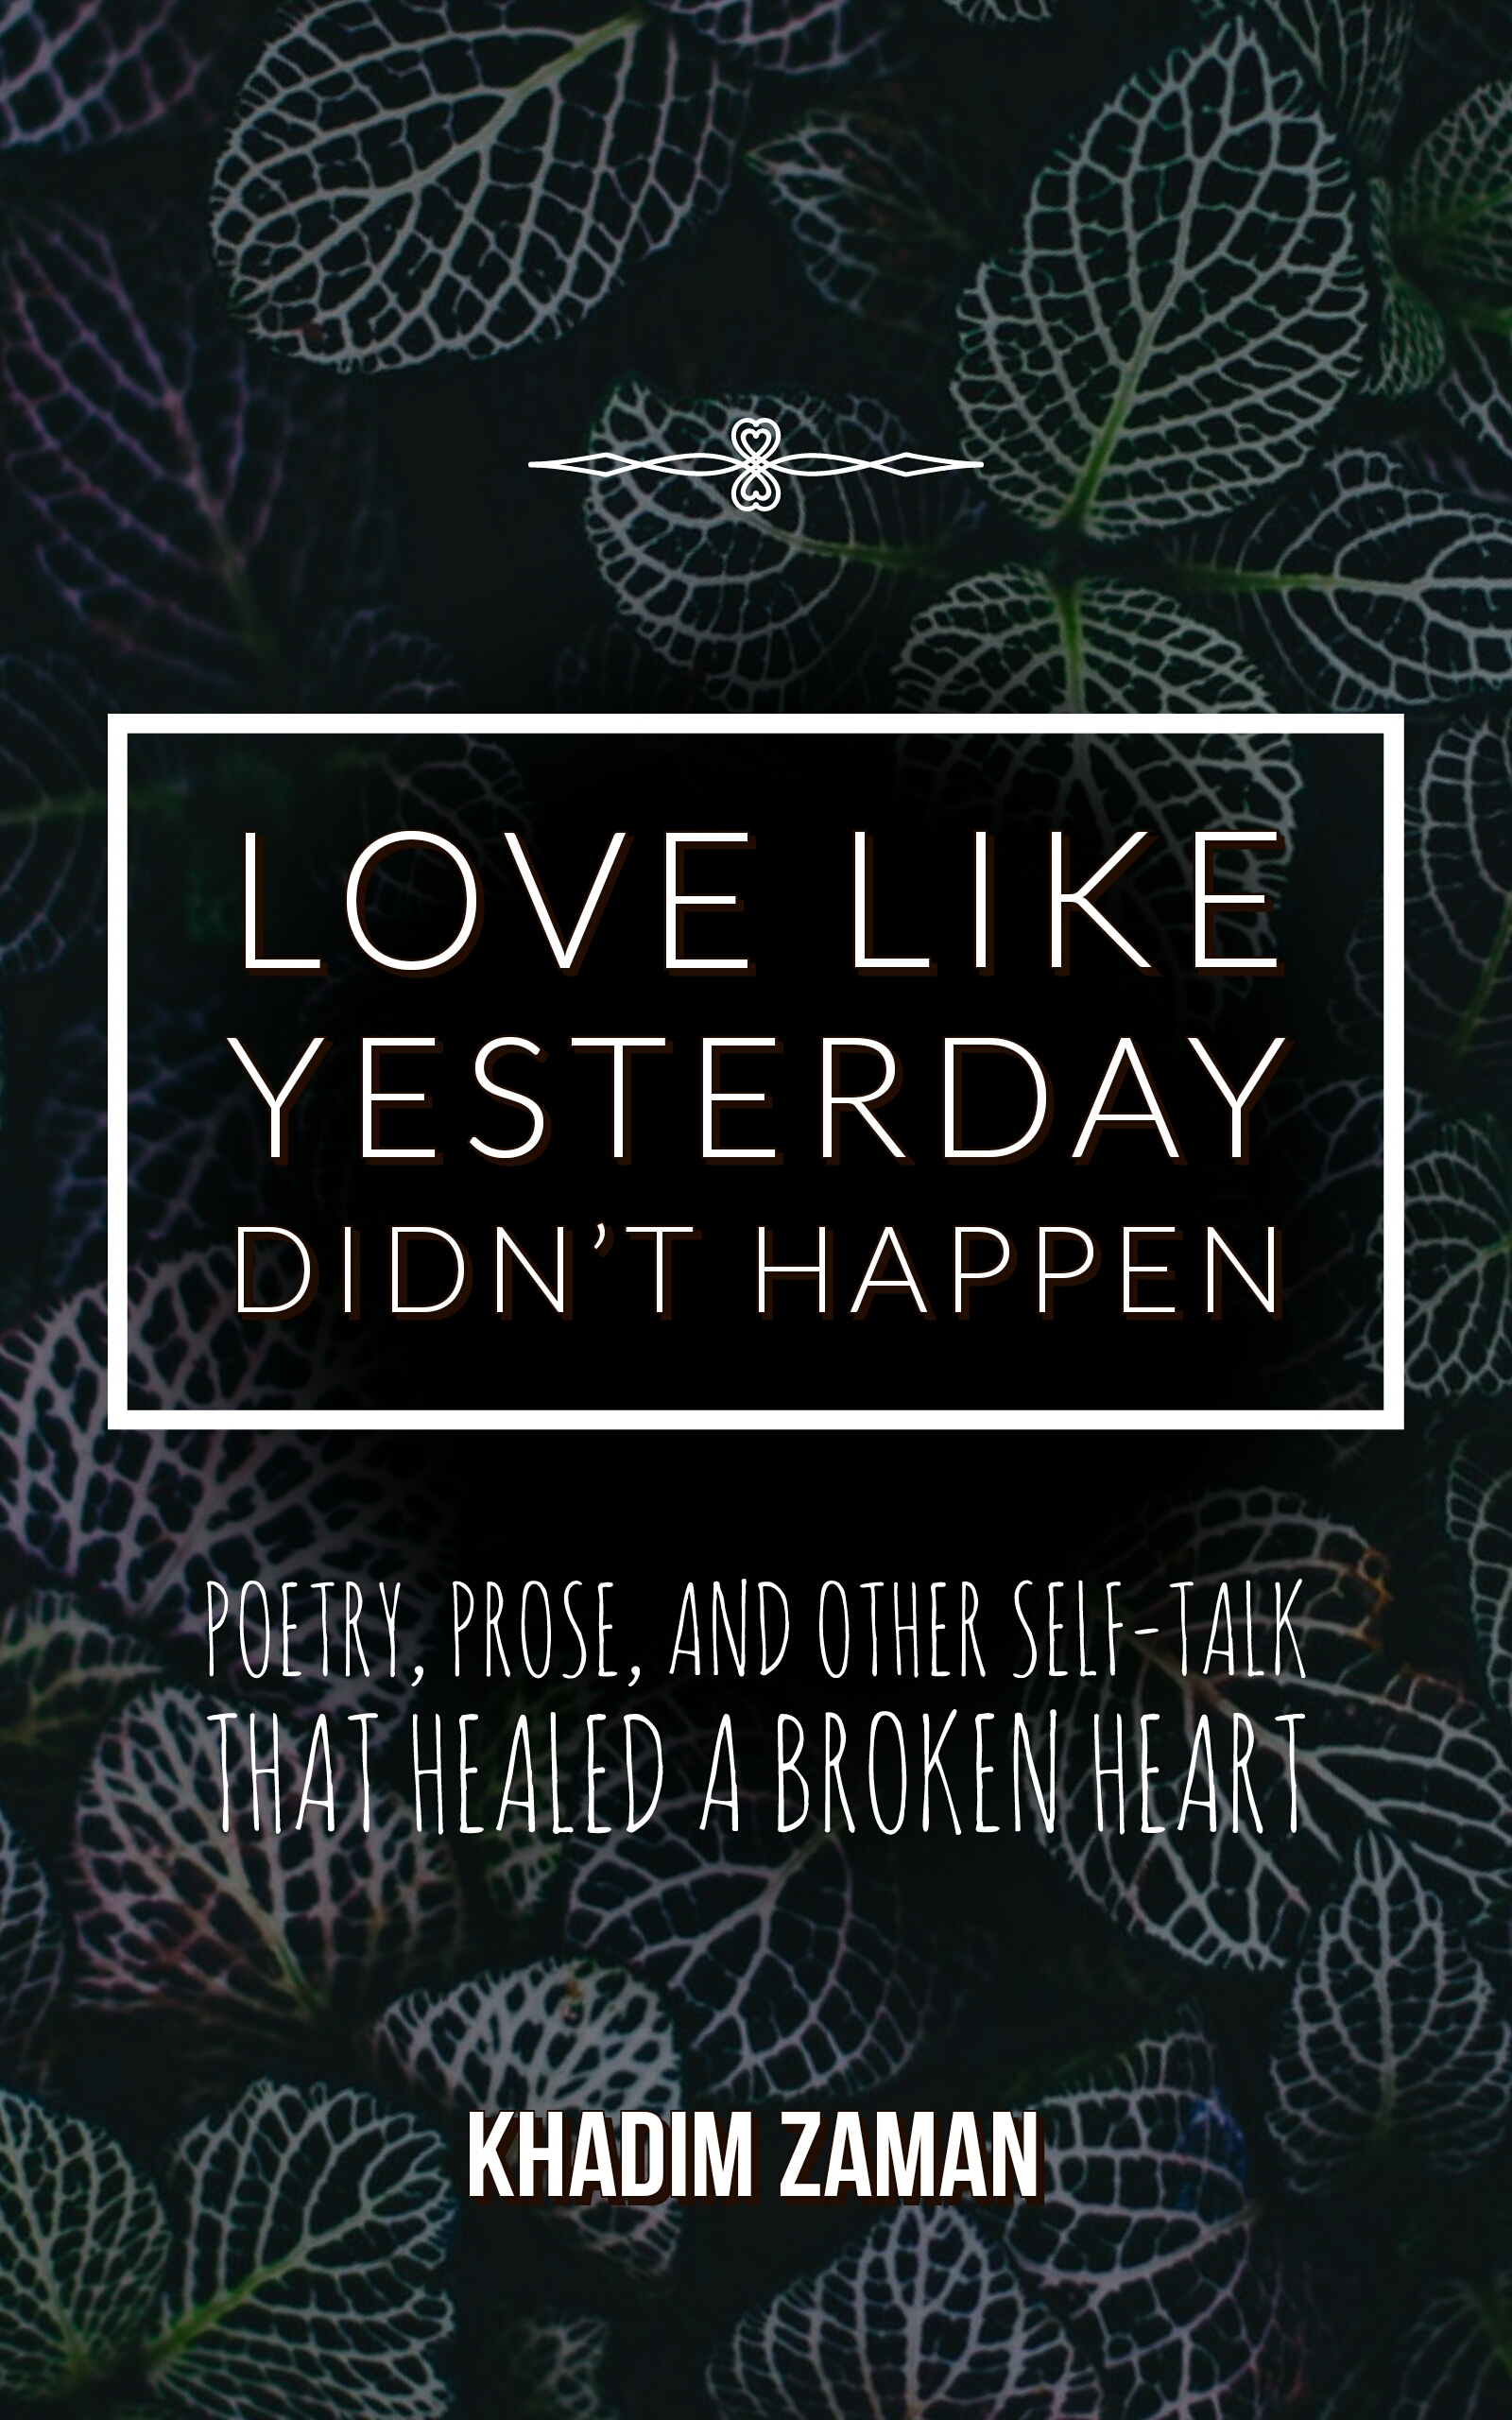 Book Cover: Love Like Yesterday Didn't Happen, by Khadim Zaman